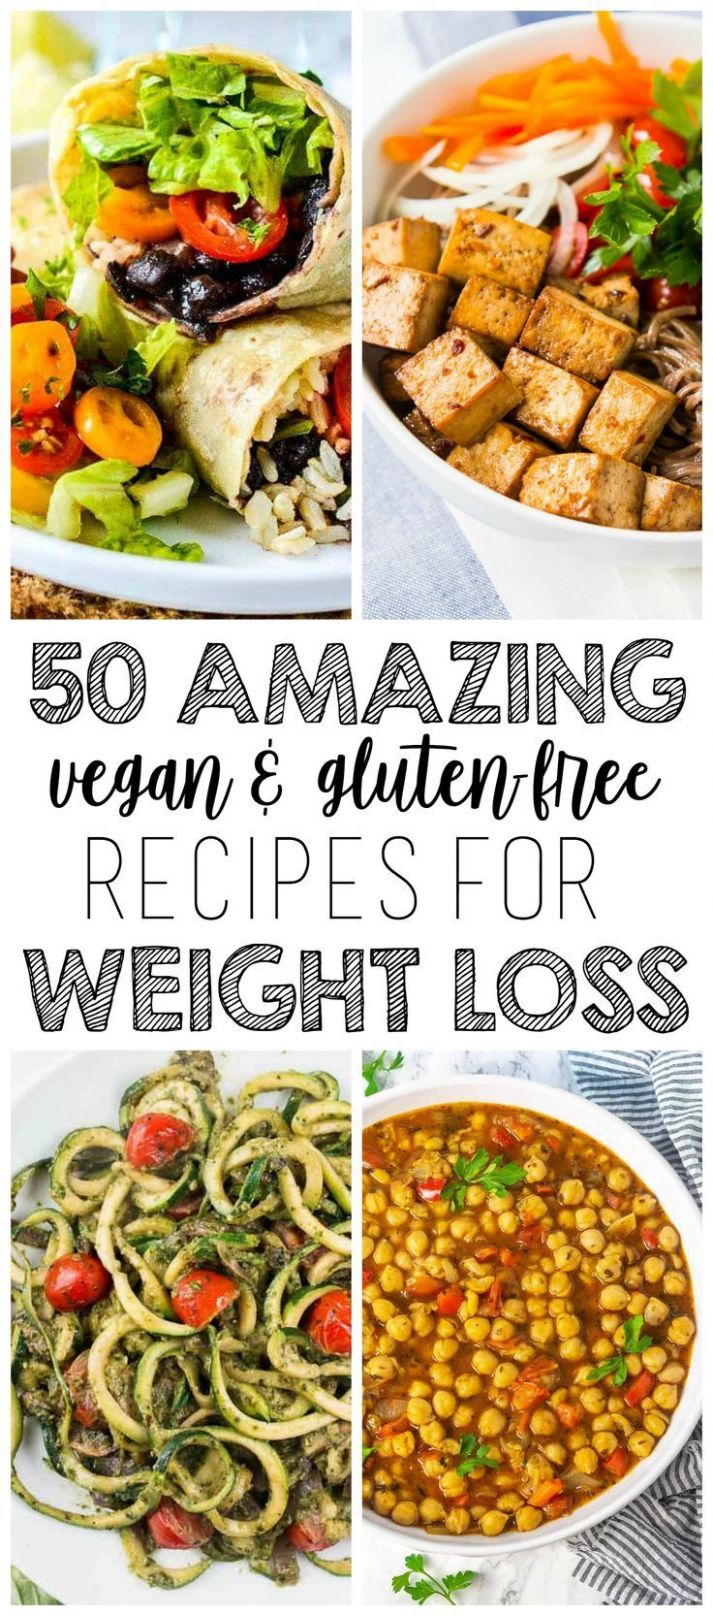 Pin on All Things Vegan - Food Recipes To Lose Weight